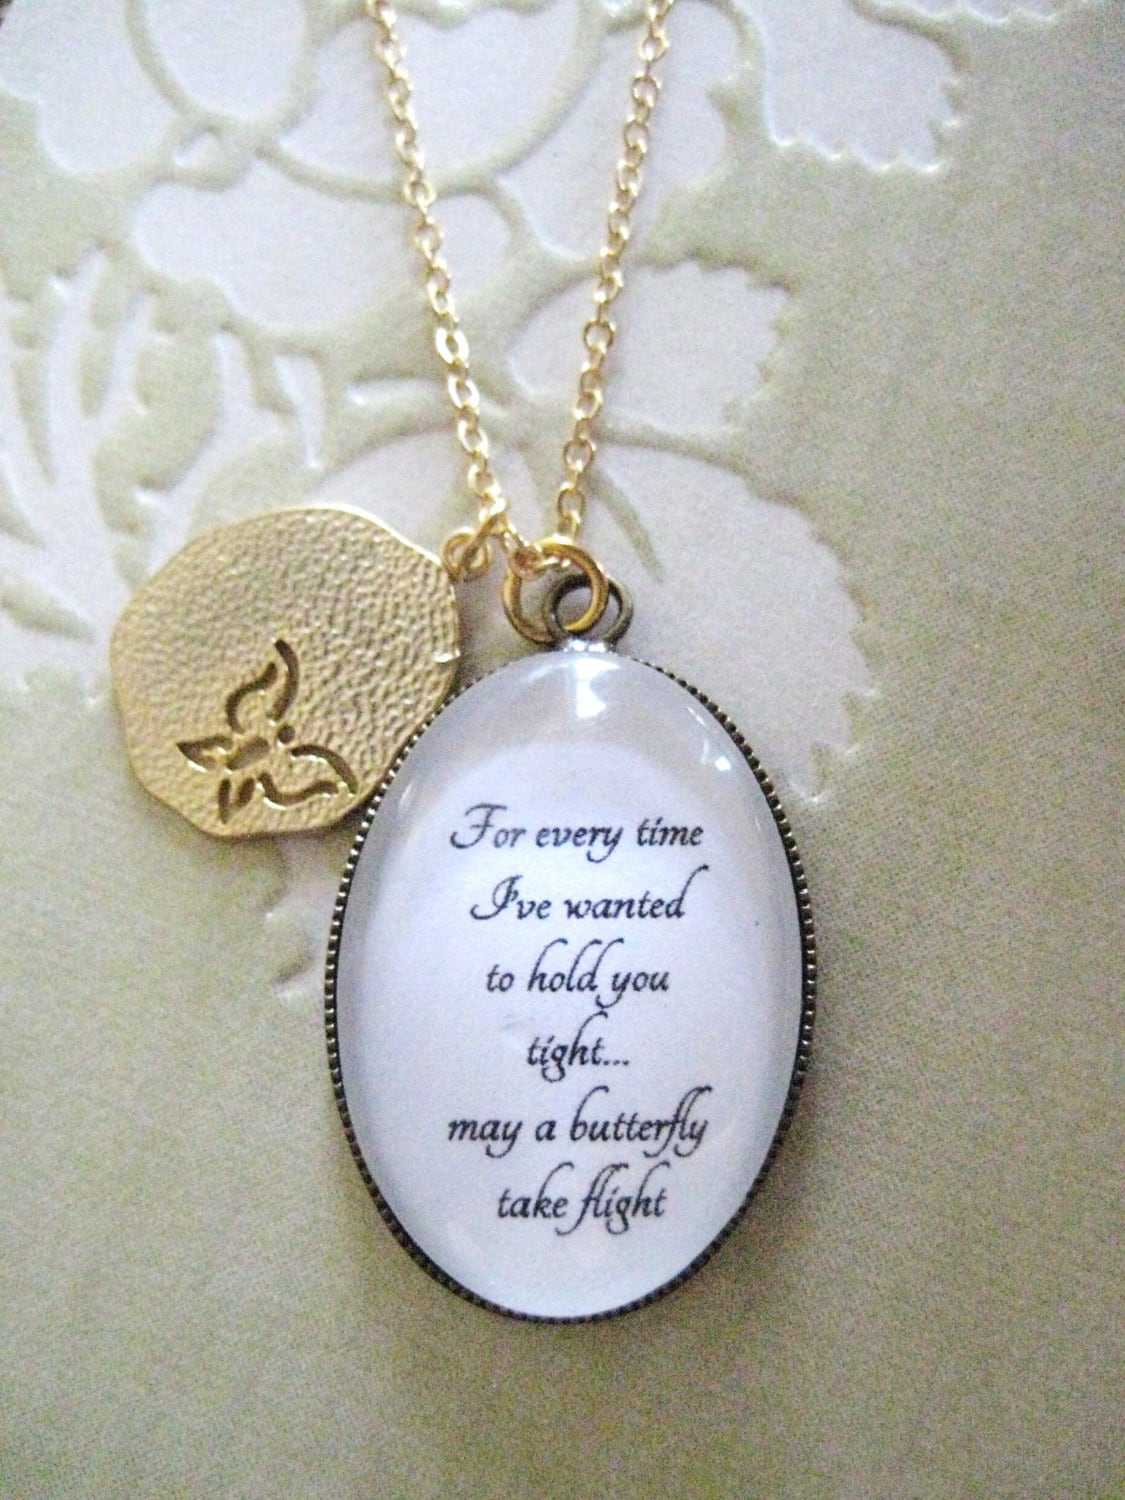 store hair necklace jewelry of lock first keepsake baby memorial curl miscarriage